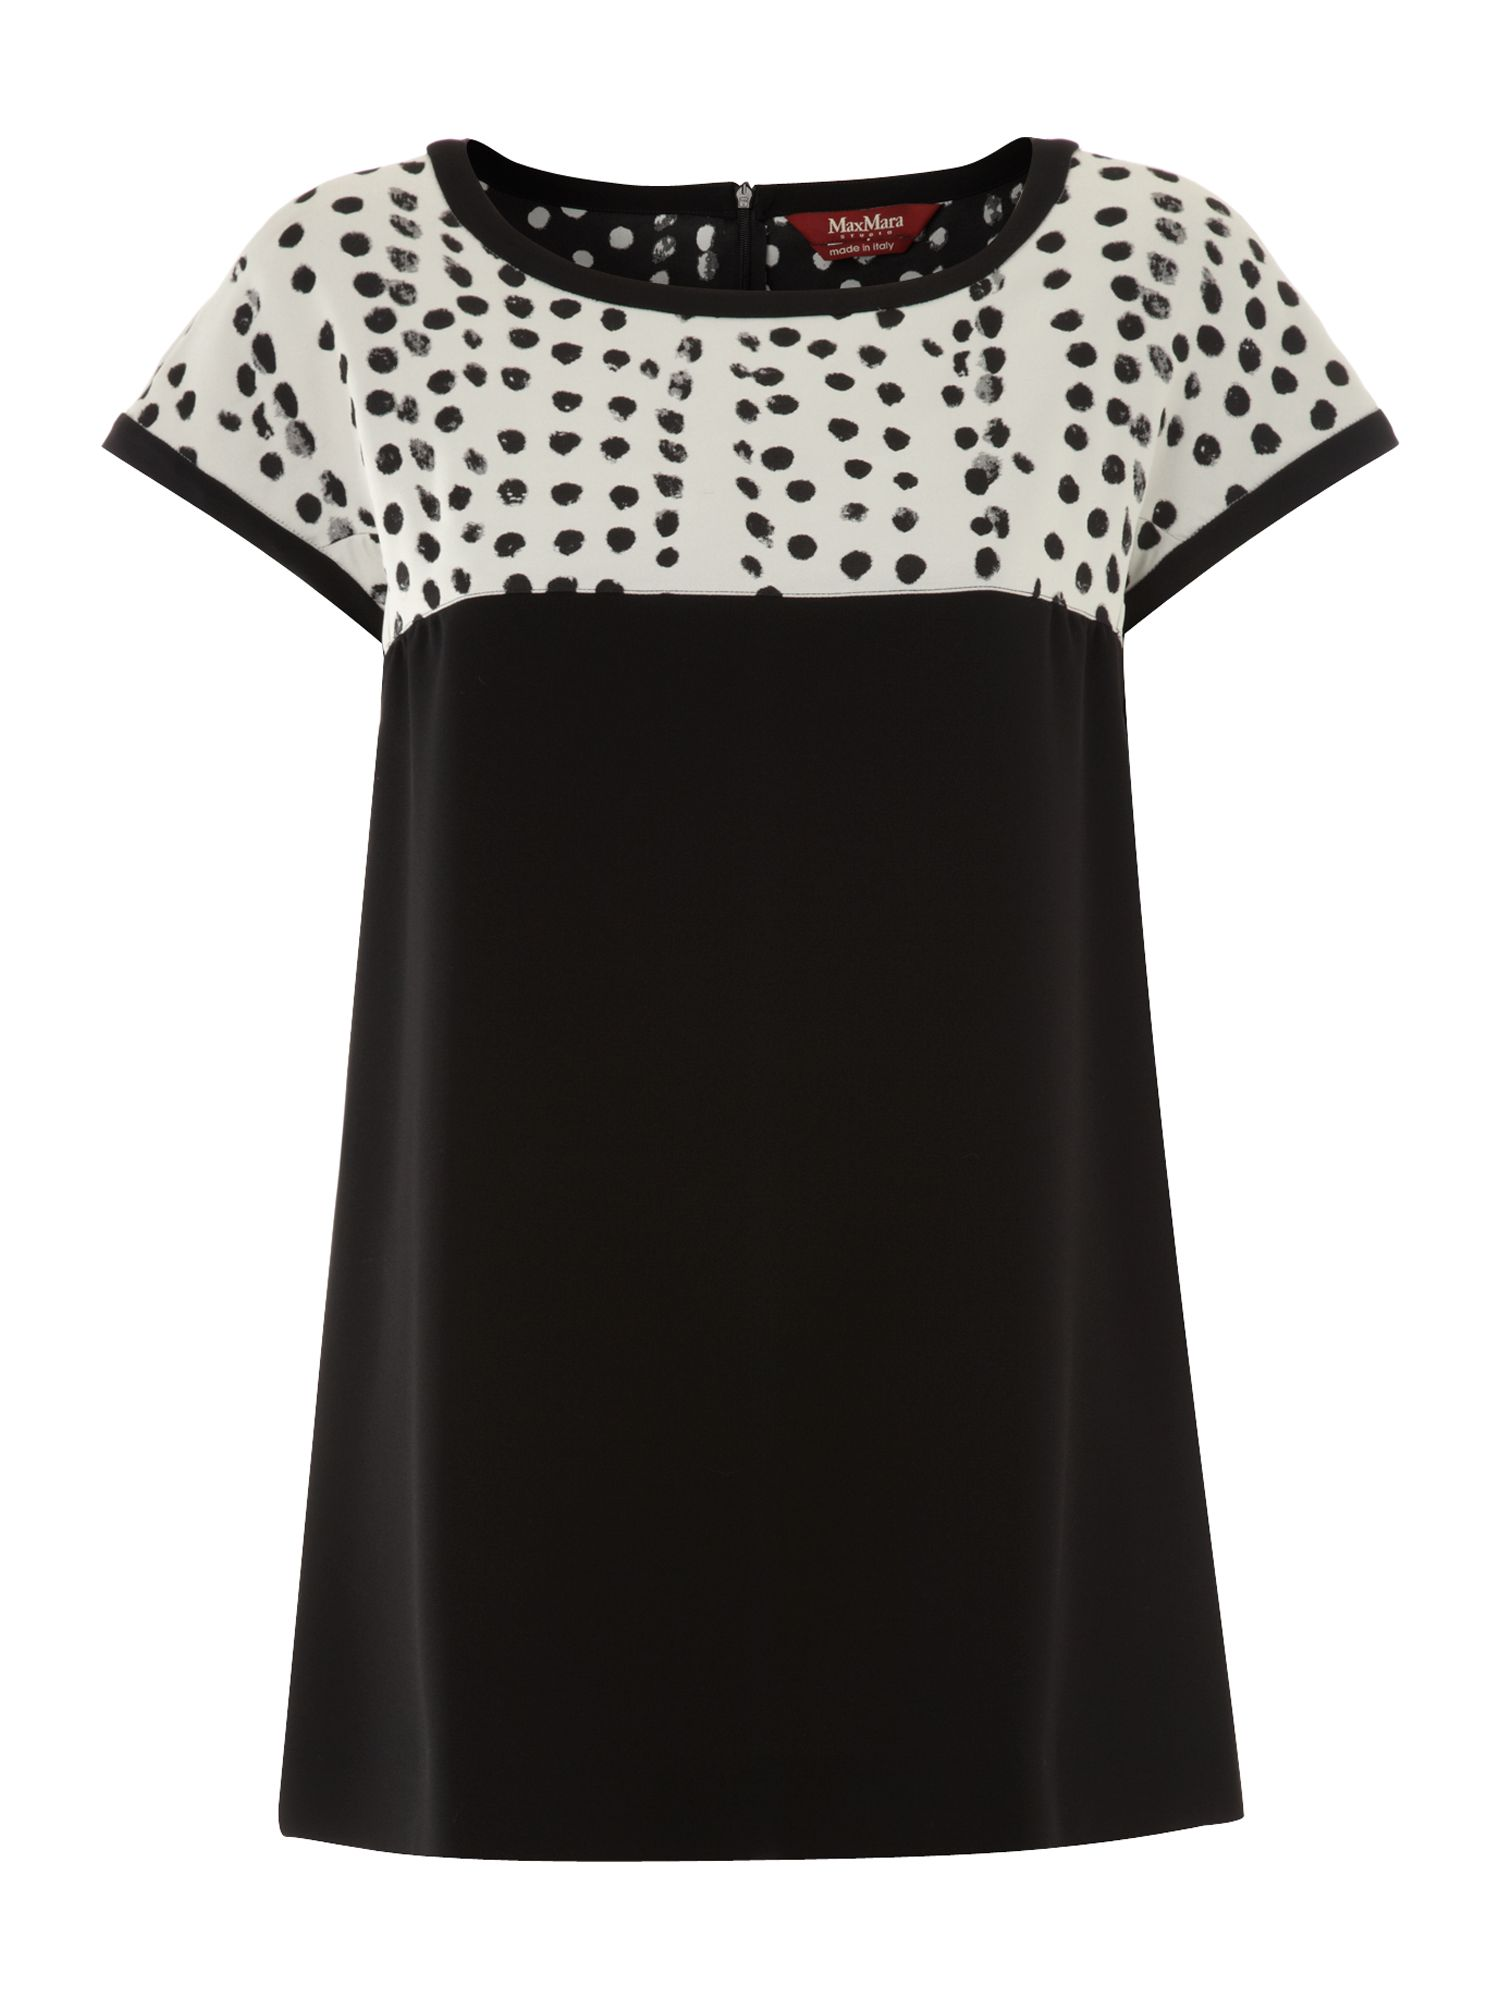 Rondine short sleeve spotted top